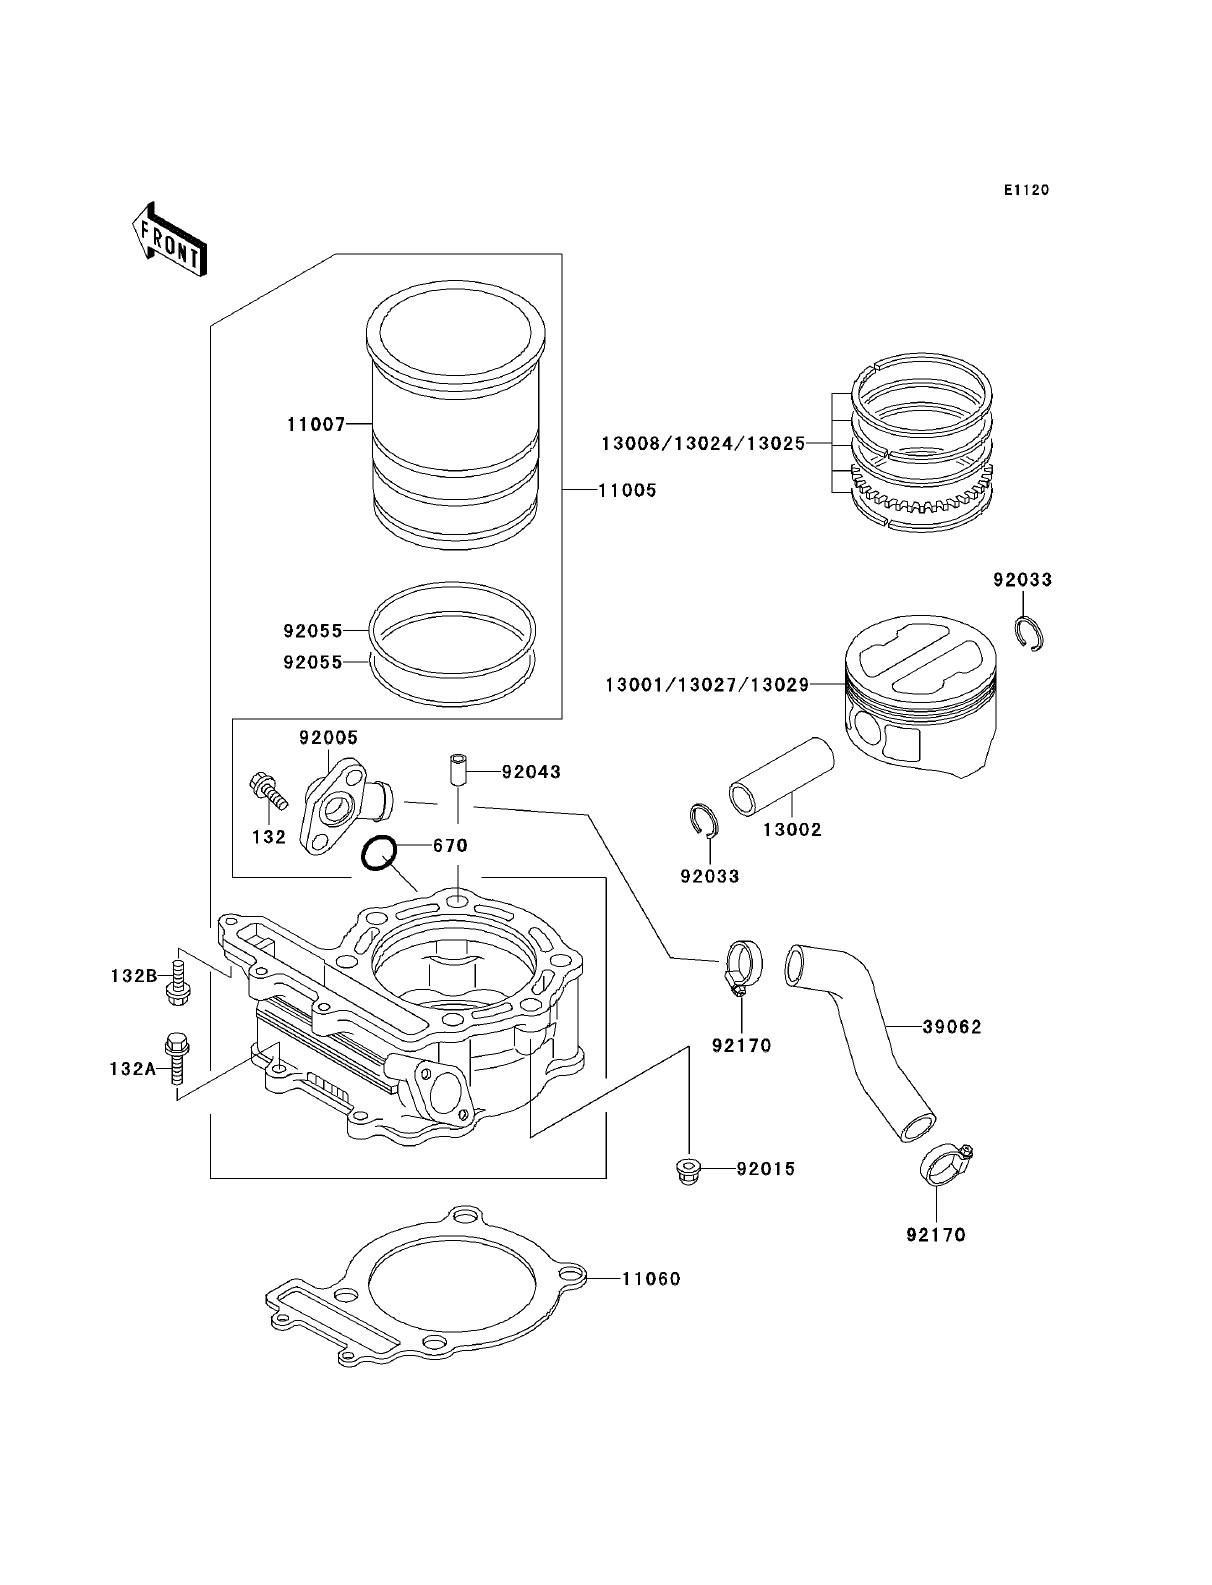 Master Cylinder Parts Diagram Kawasaki Klr250 Kawasaki Klr250 Parts Diagrams Of Master Cylinder Parts Diagram